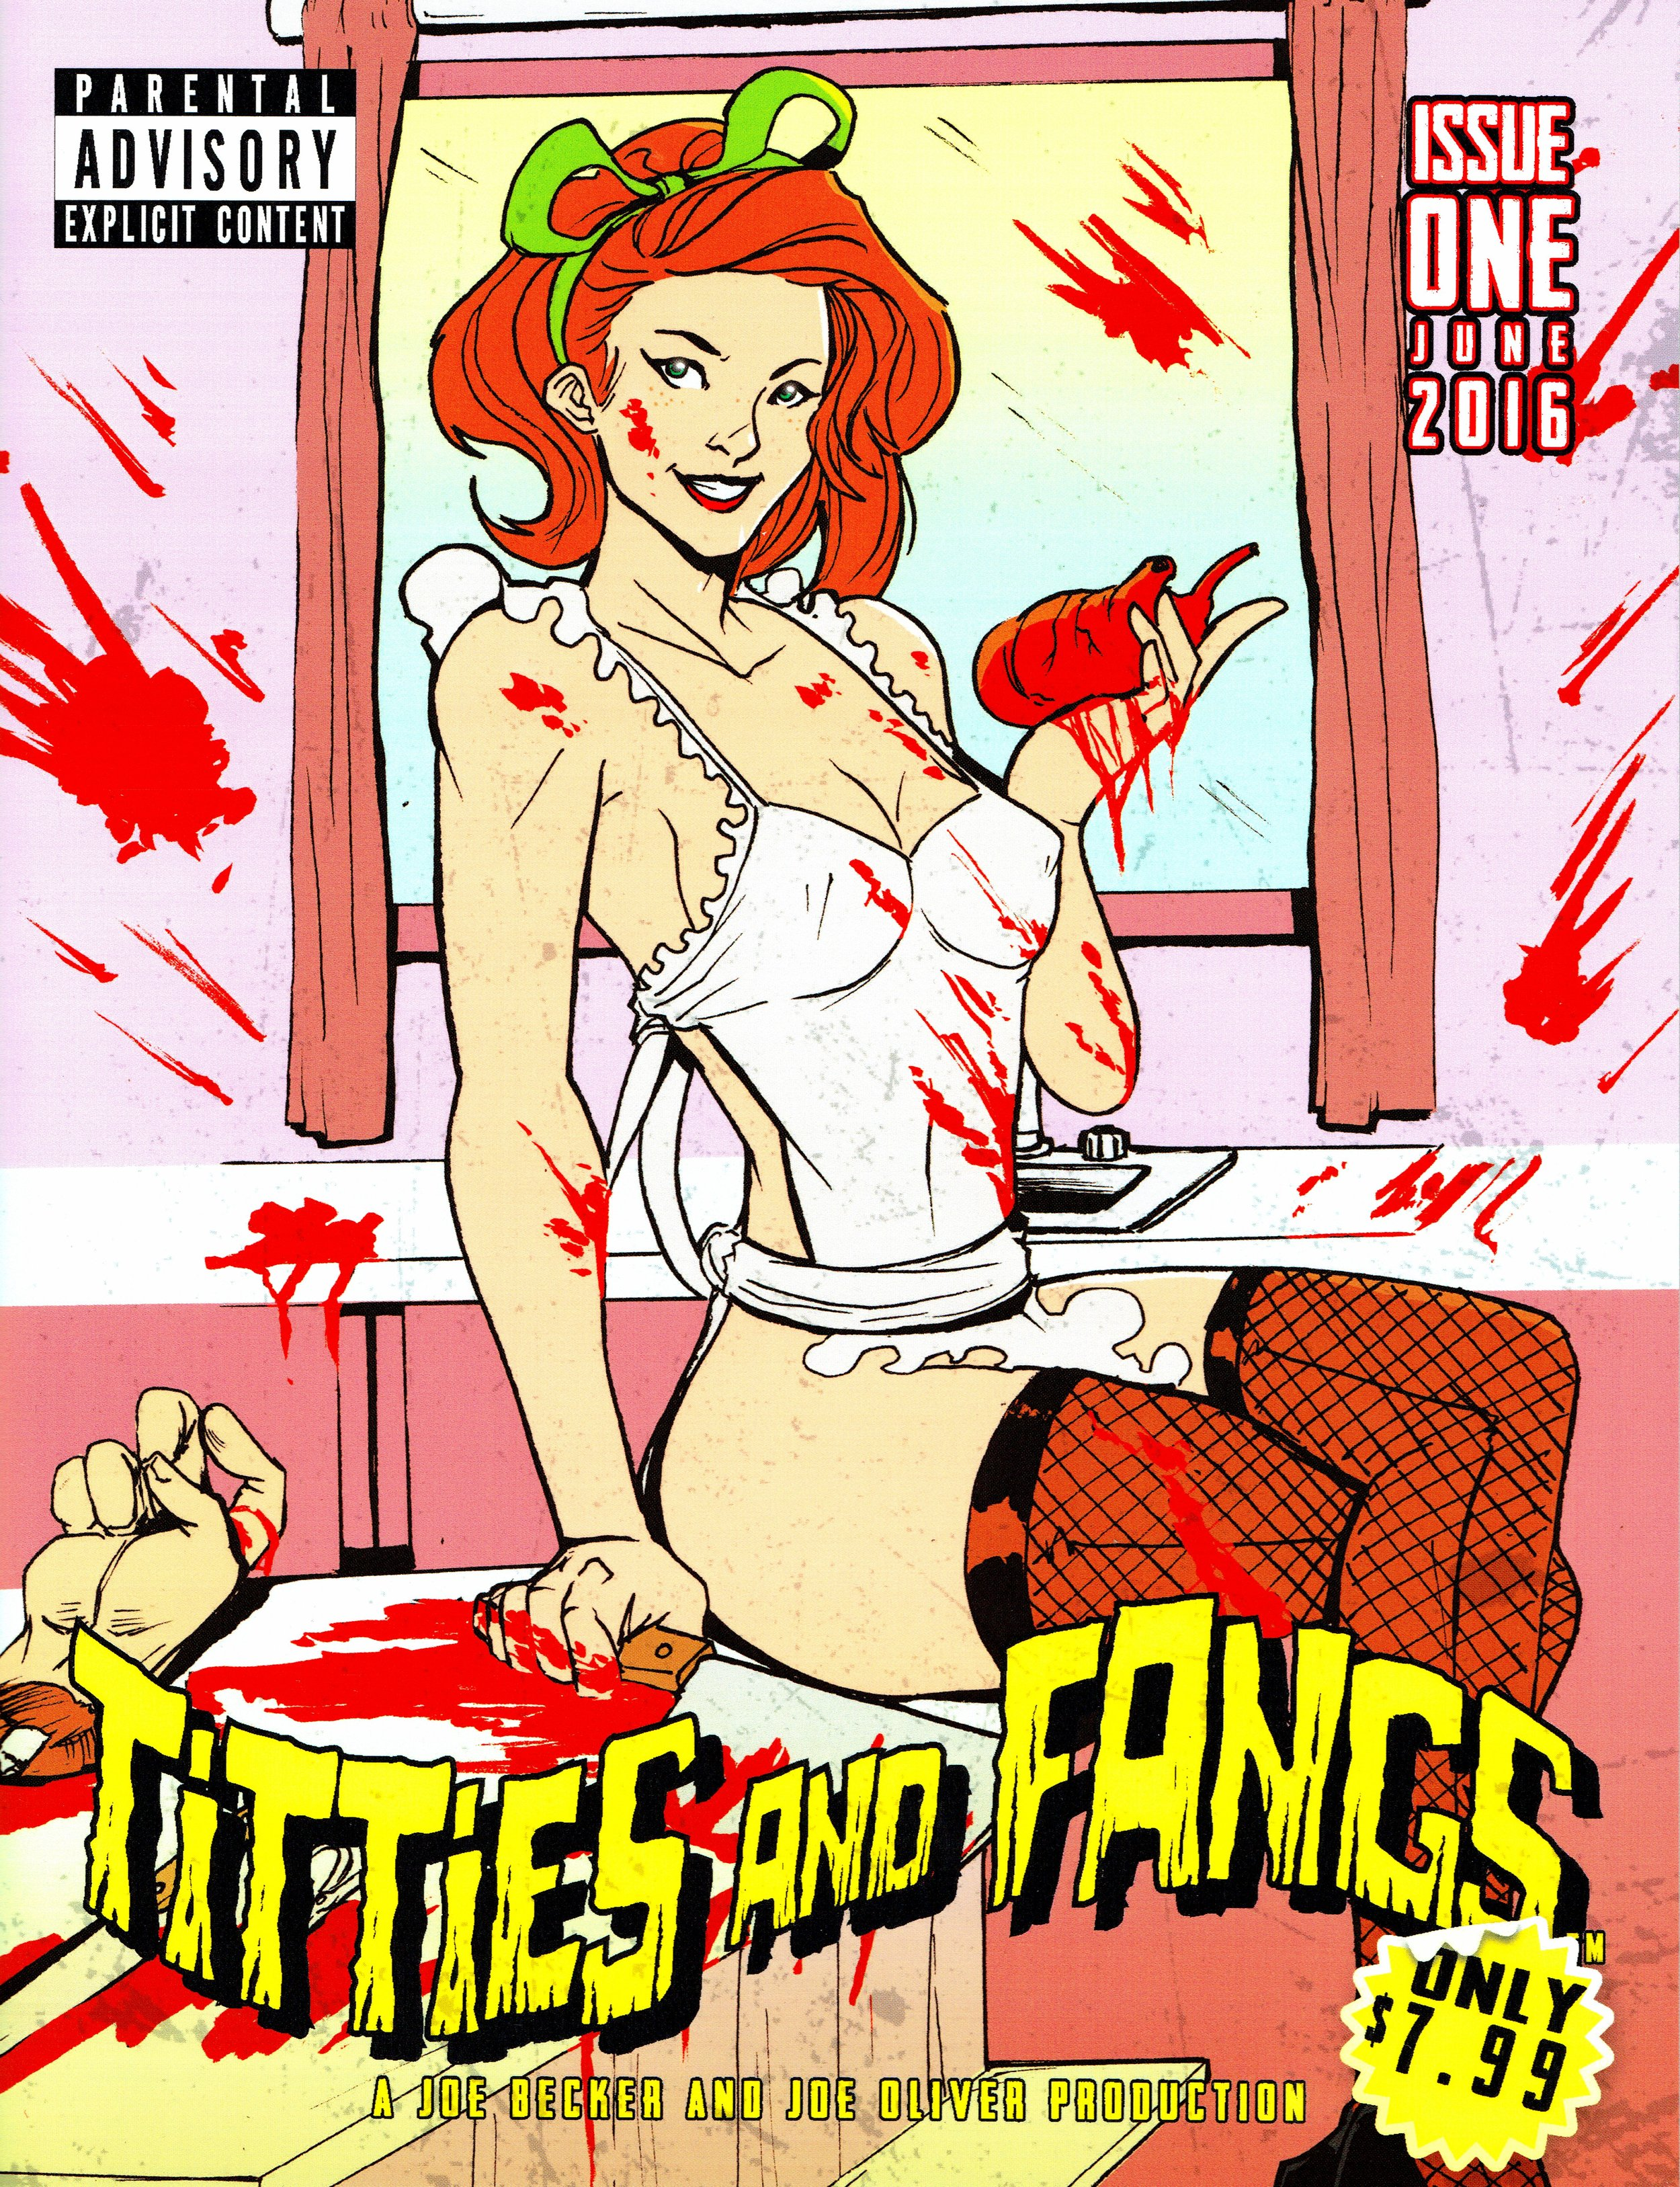 Titties and Fangs #1 - A Joe Becker and Joe Oliver Production.